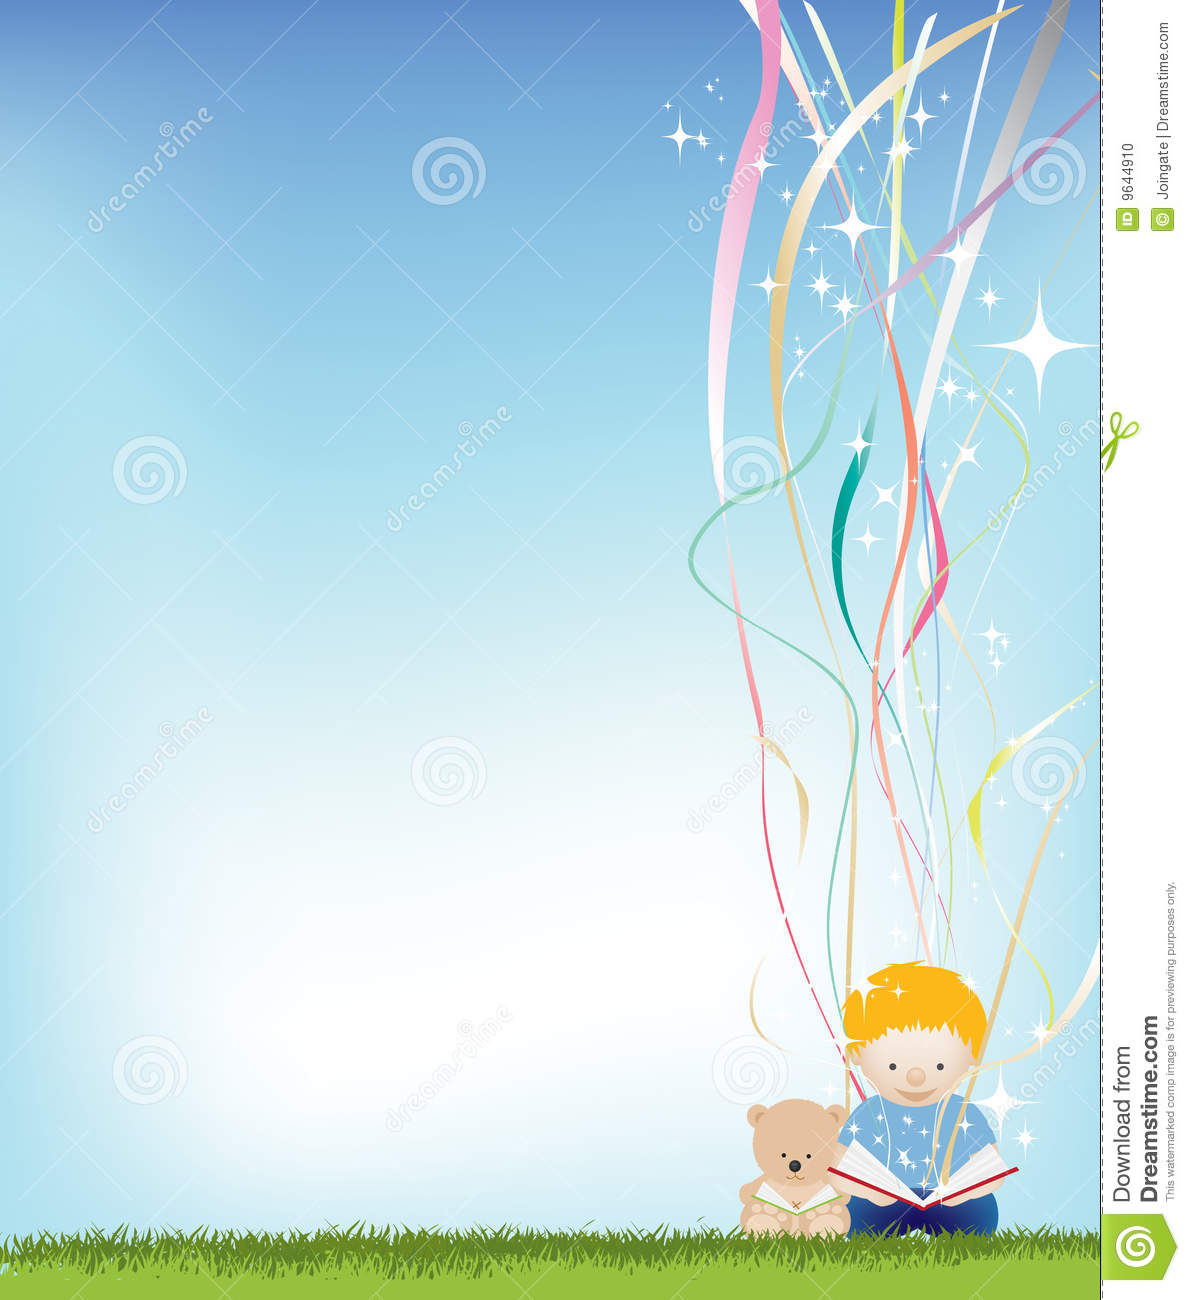 Wallpaper Cute Plain Boy Reading Background Stock Photo Image 9644910